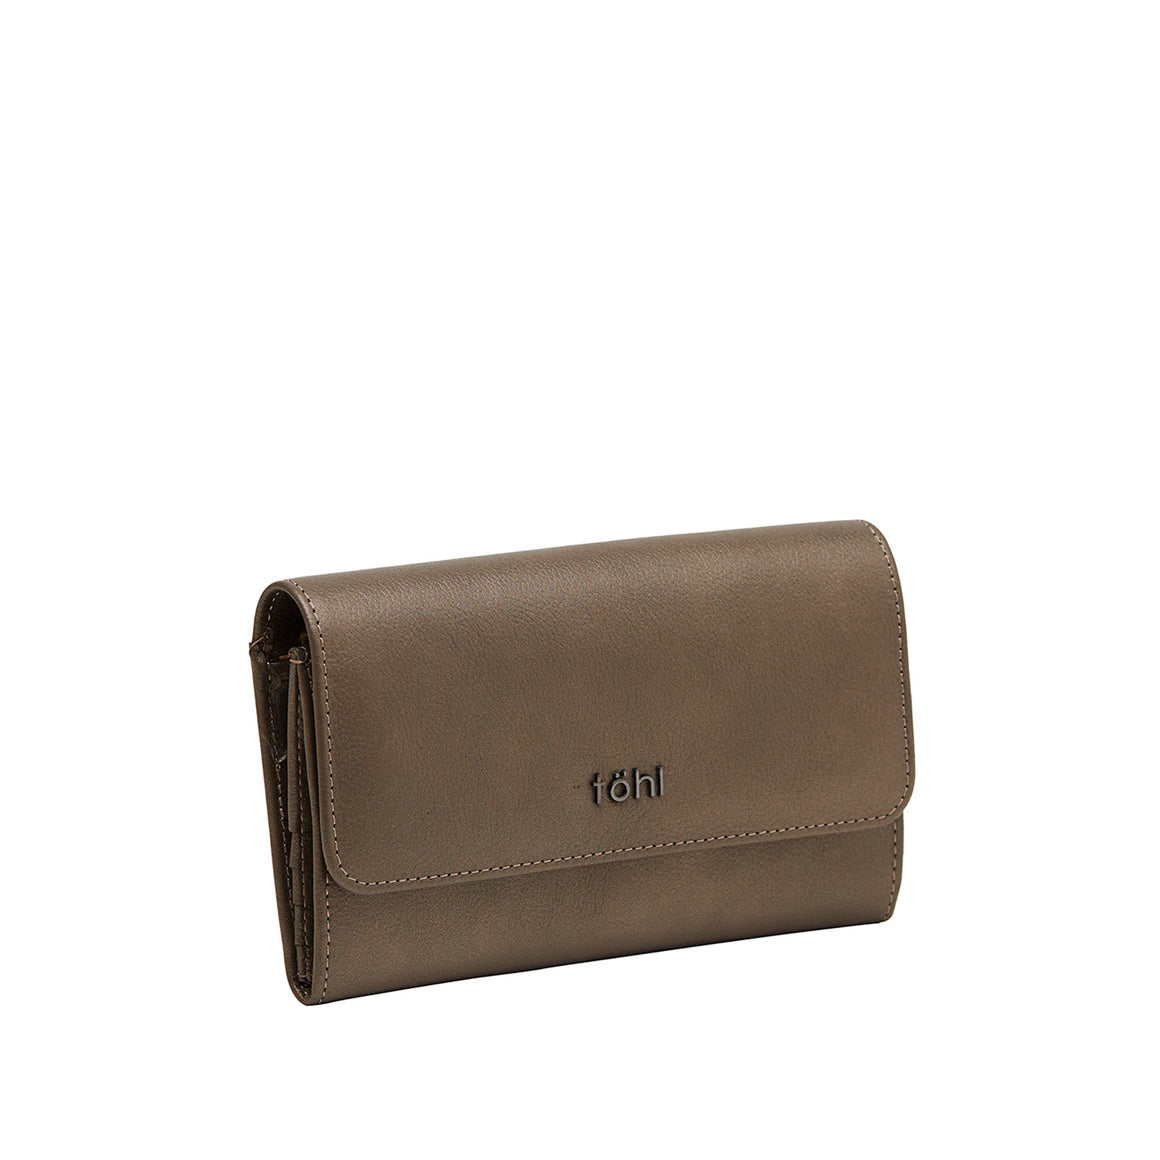 WT 0011 - TOHL ALLEN WOMEN'S FLAPOVER WALLET - METALLIC COPPER